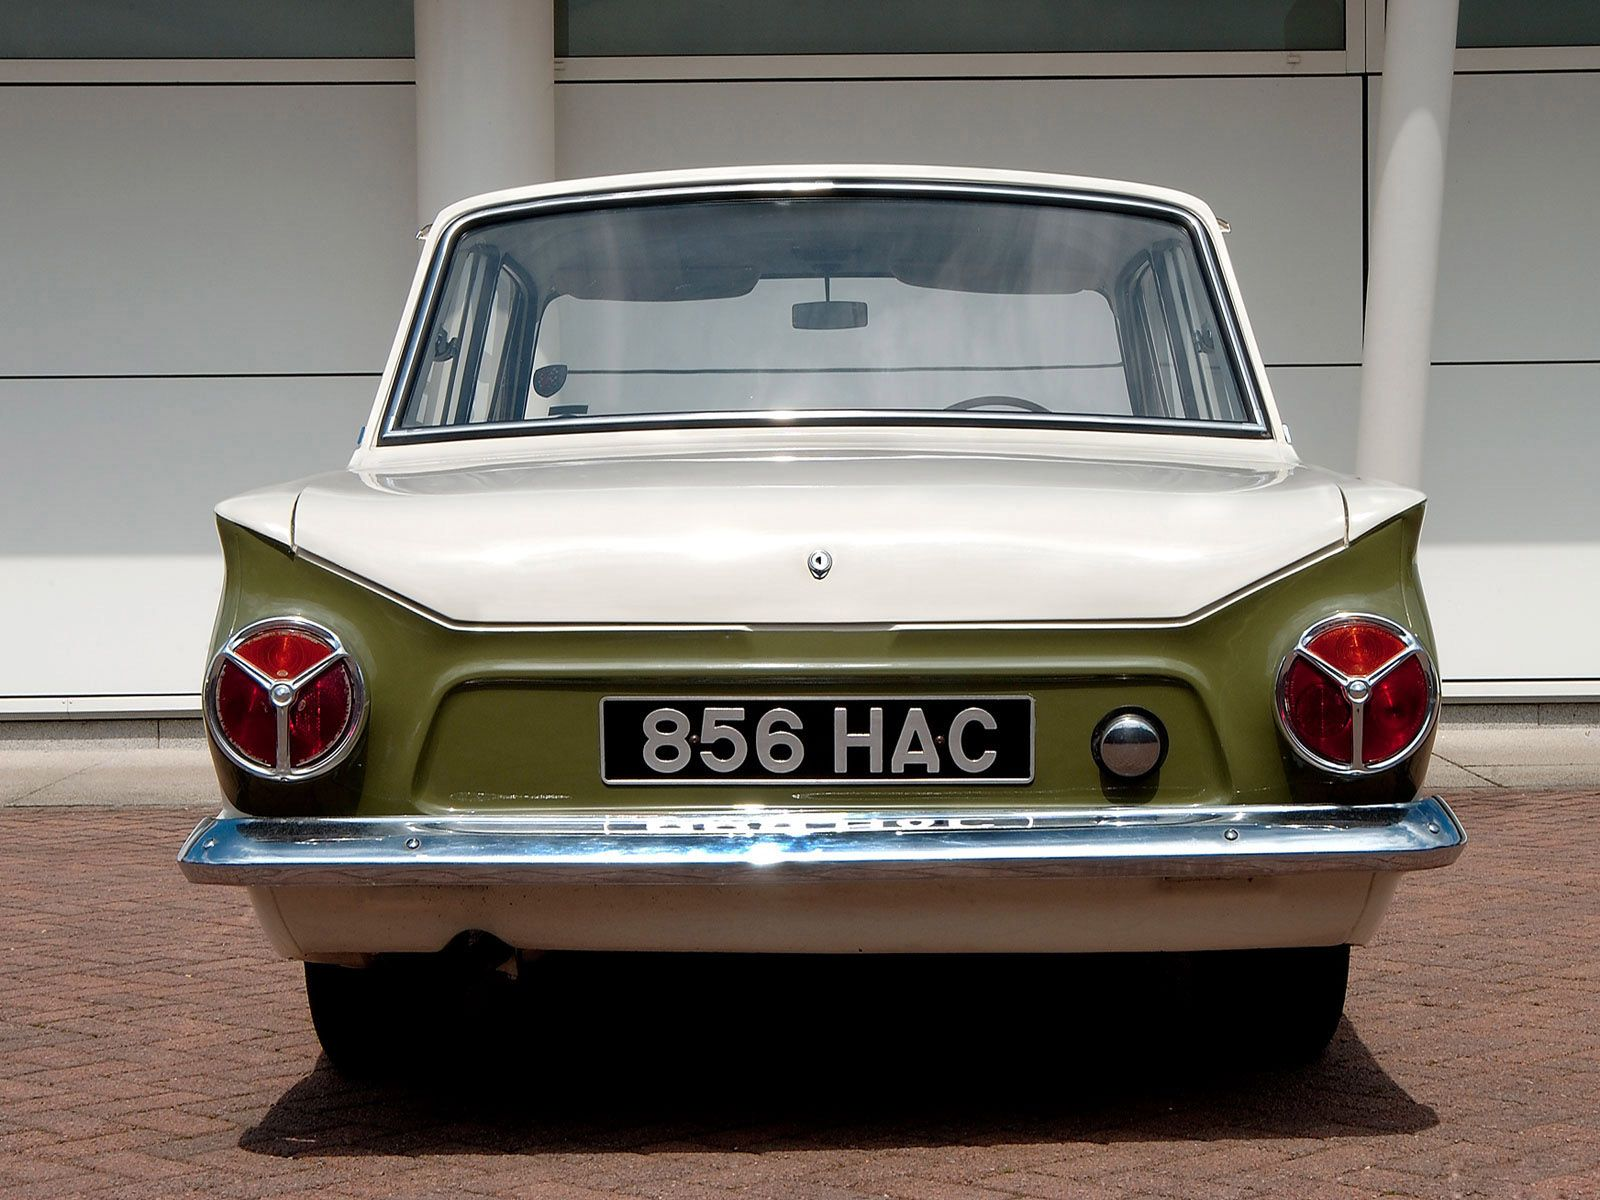 Ford Lotus Cortina 1963 1966 Photo 09 Car In Pictures Car Photo Gallery Ford Car Car Photos